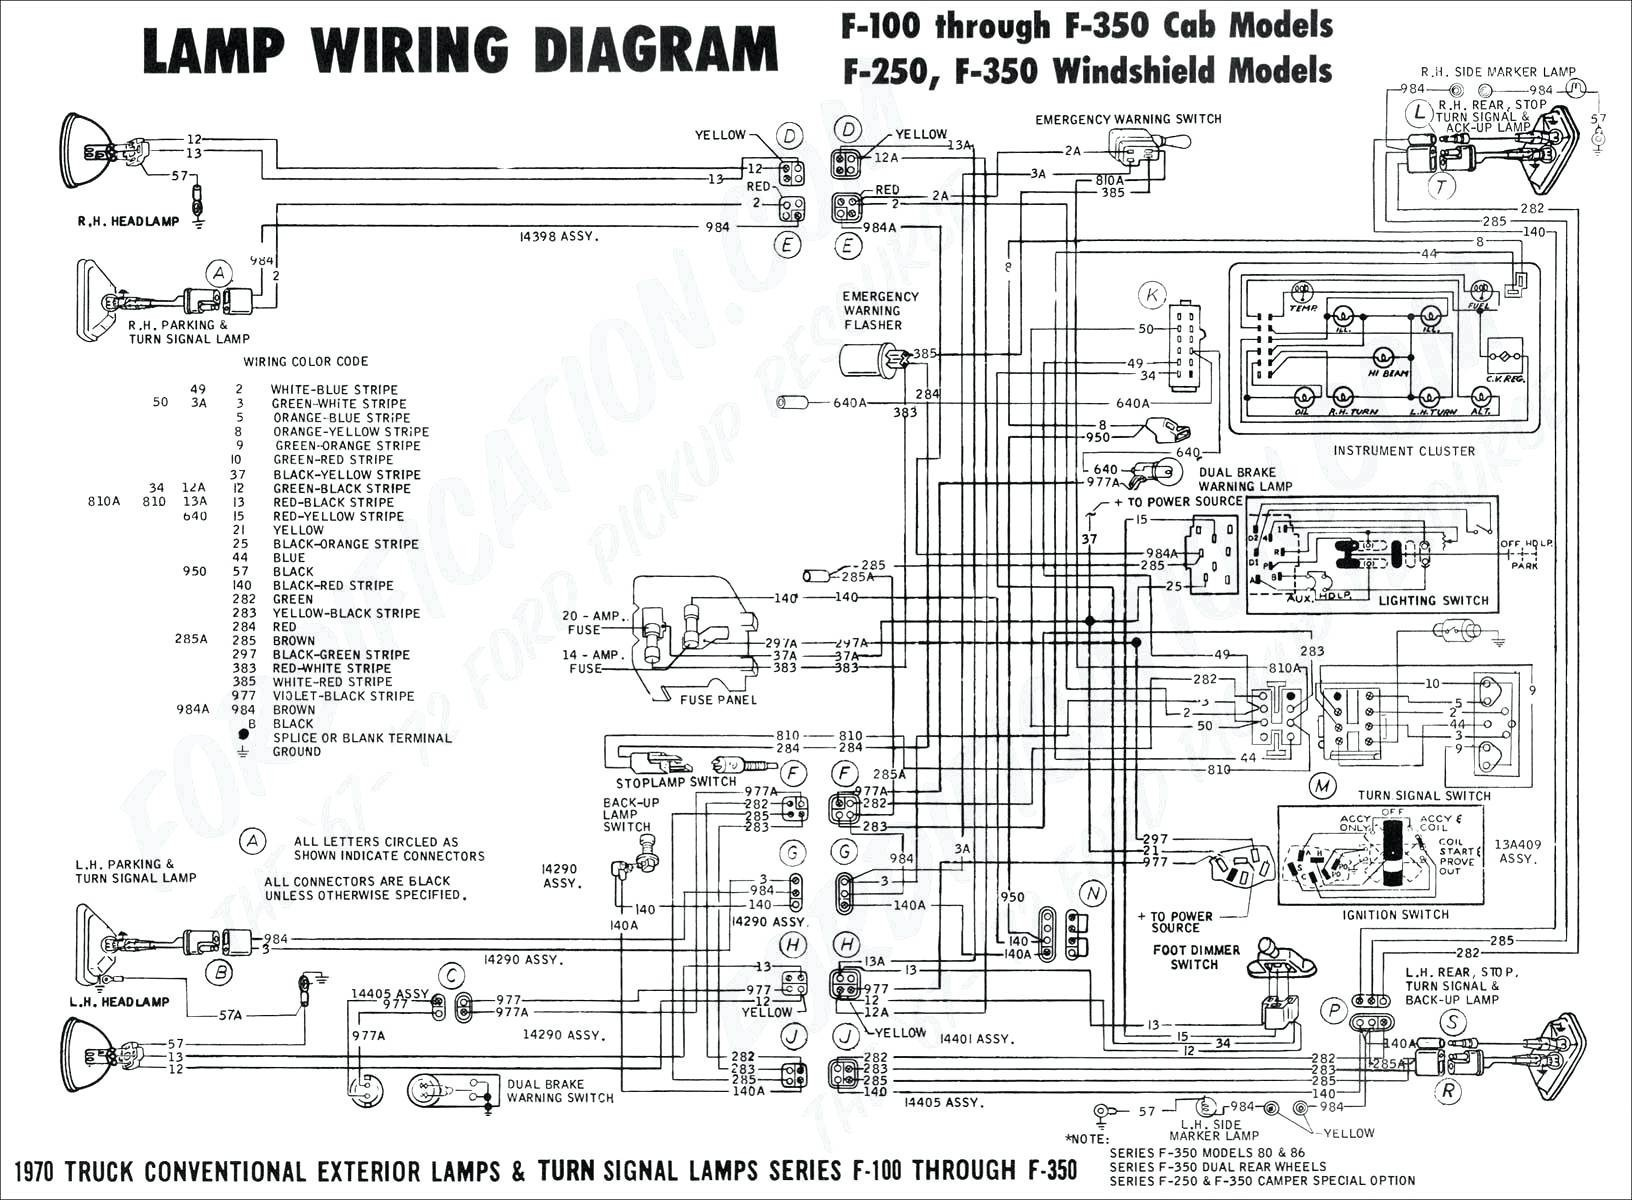 Free Wiring Diagrams for Dodge Trucks Dodge Truck Wiring Diagram Free Wiring Diagram toolbox Of Free Wiring Diagrams for Dodge Trucks Dodge Truck Electrical Diagrams Schema Wiring Diagram